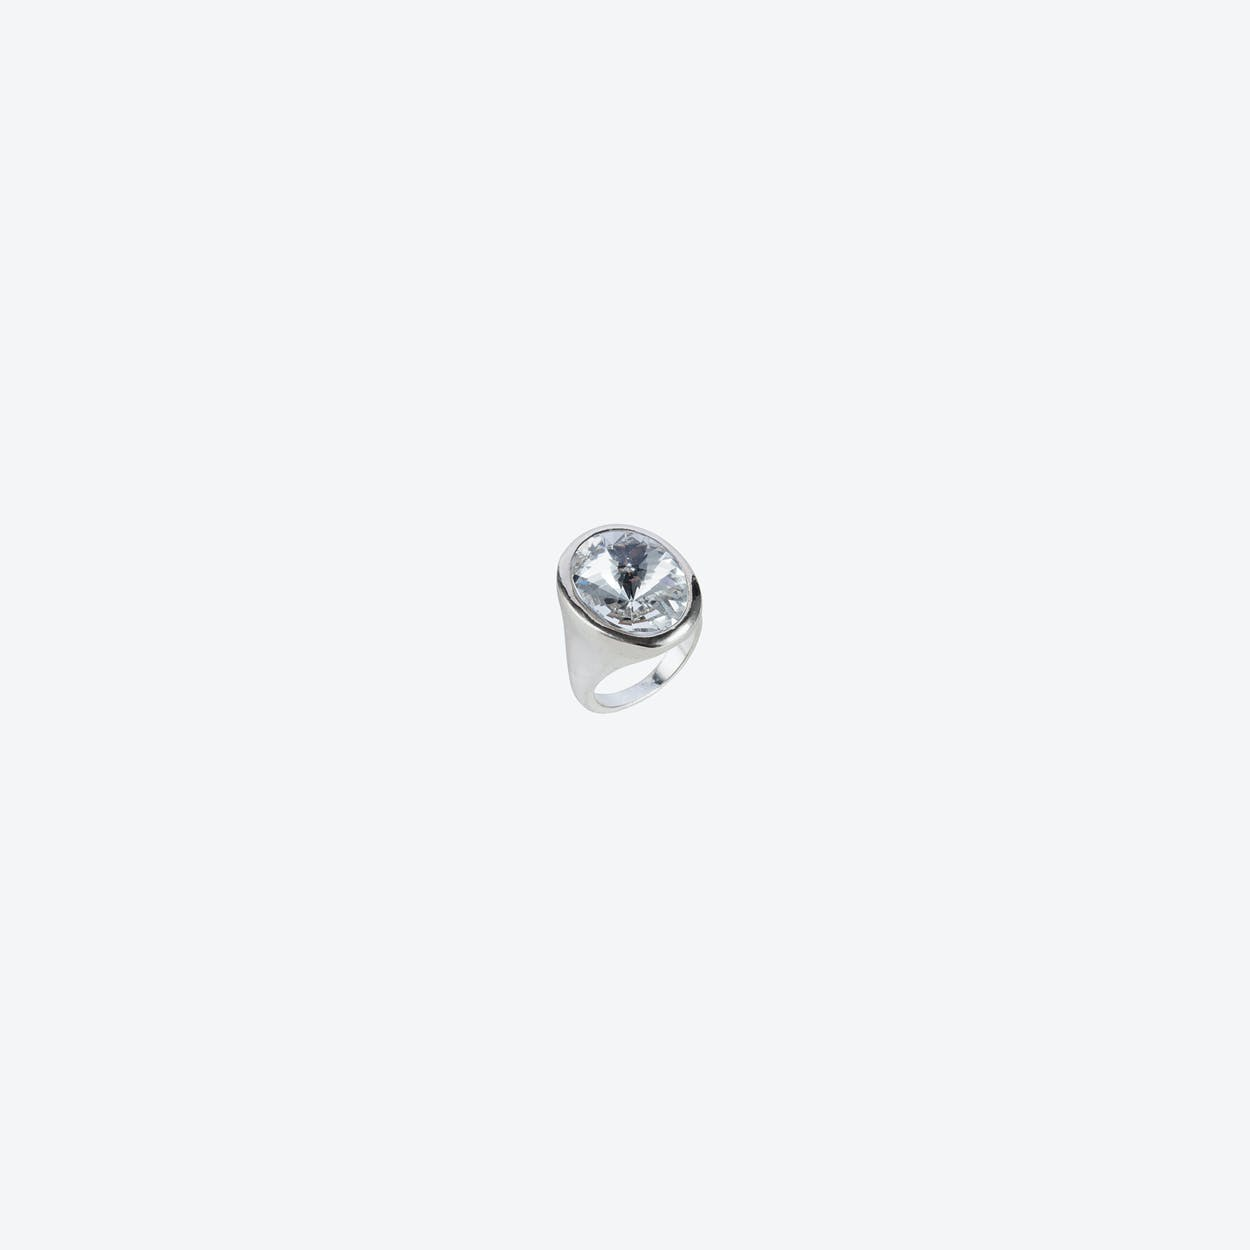 Oval ring in Silver with Crystal